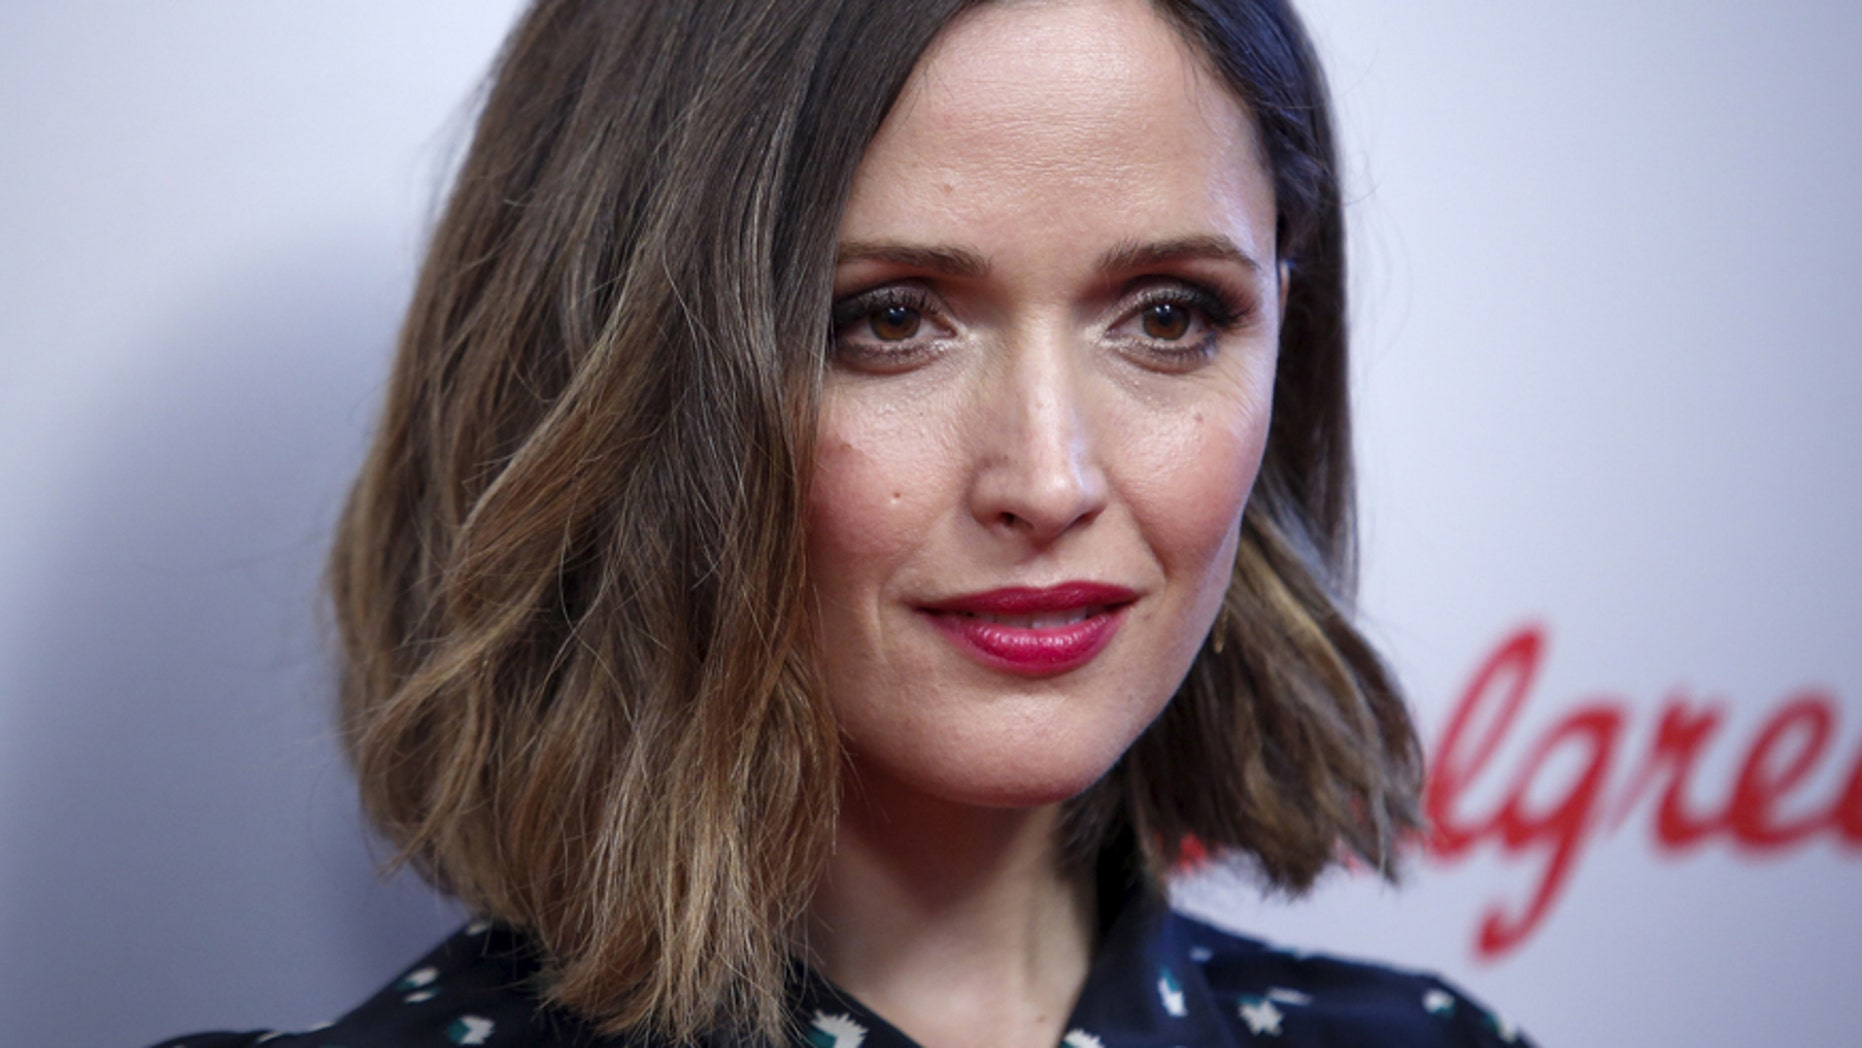 Actress Rose Byrne attends the Red Nose Charity event in New York May 21, 2015.